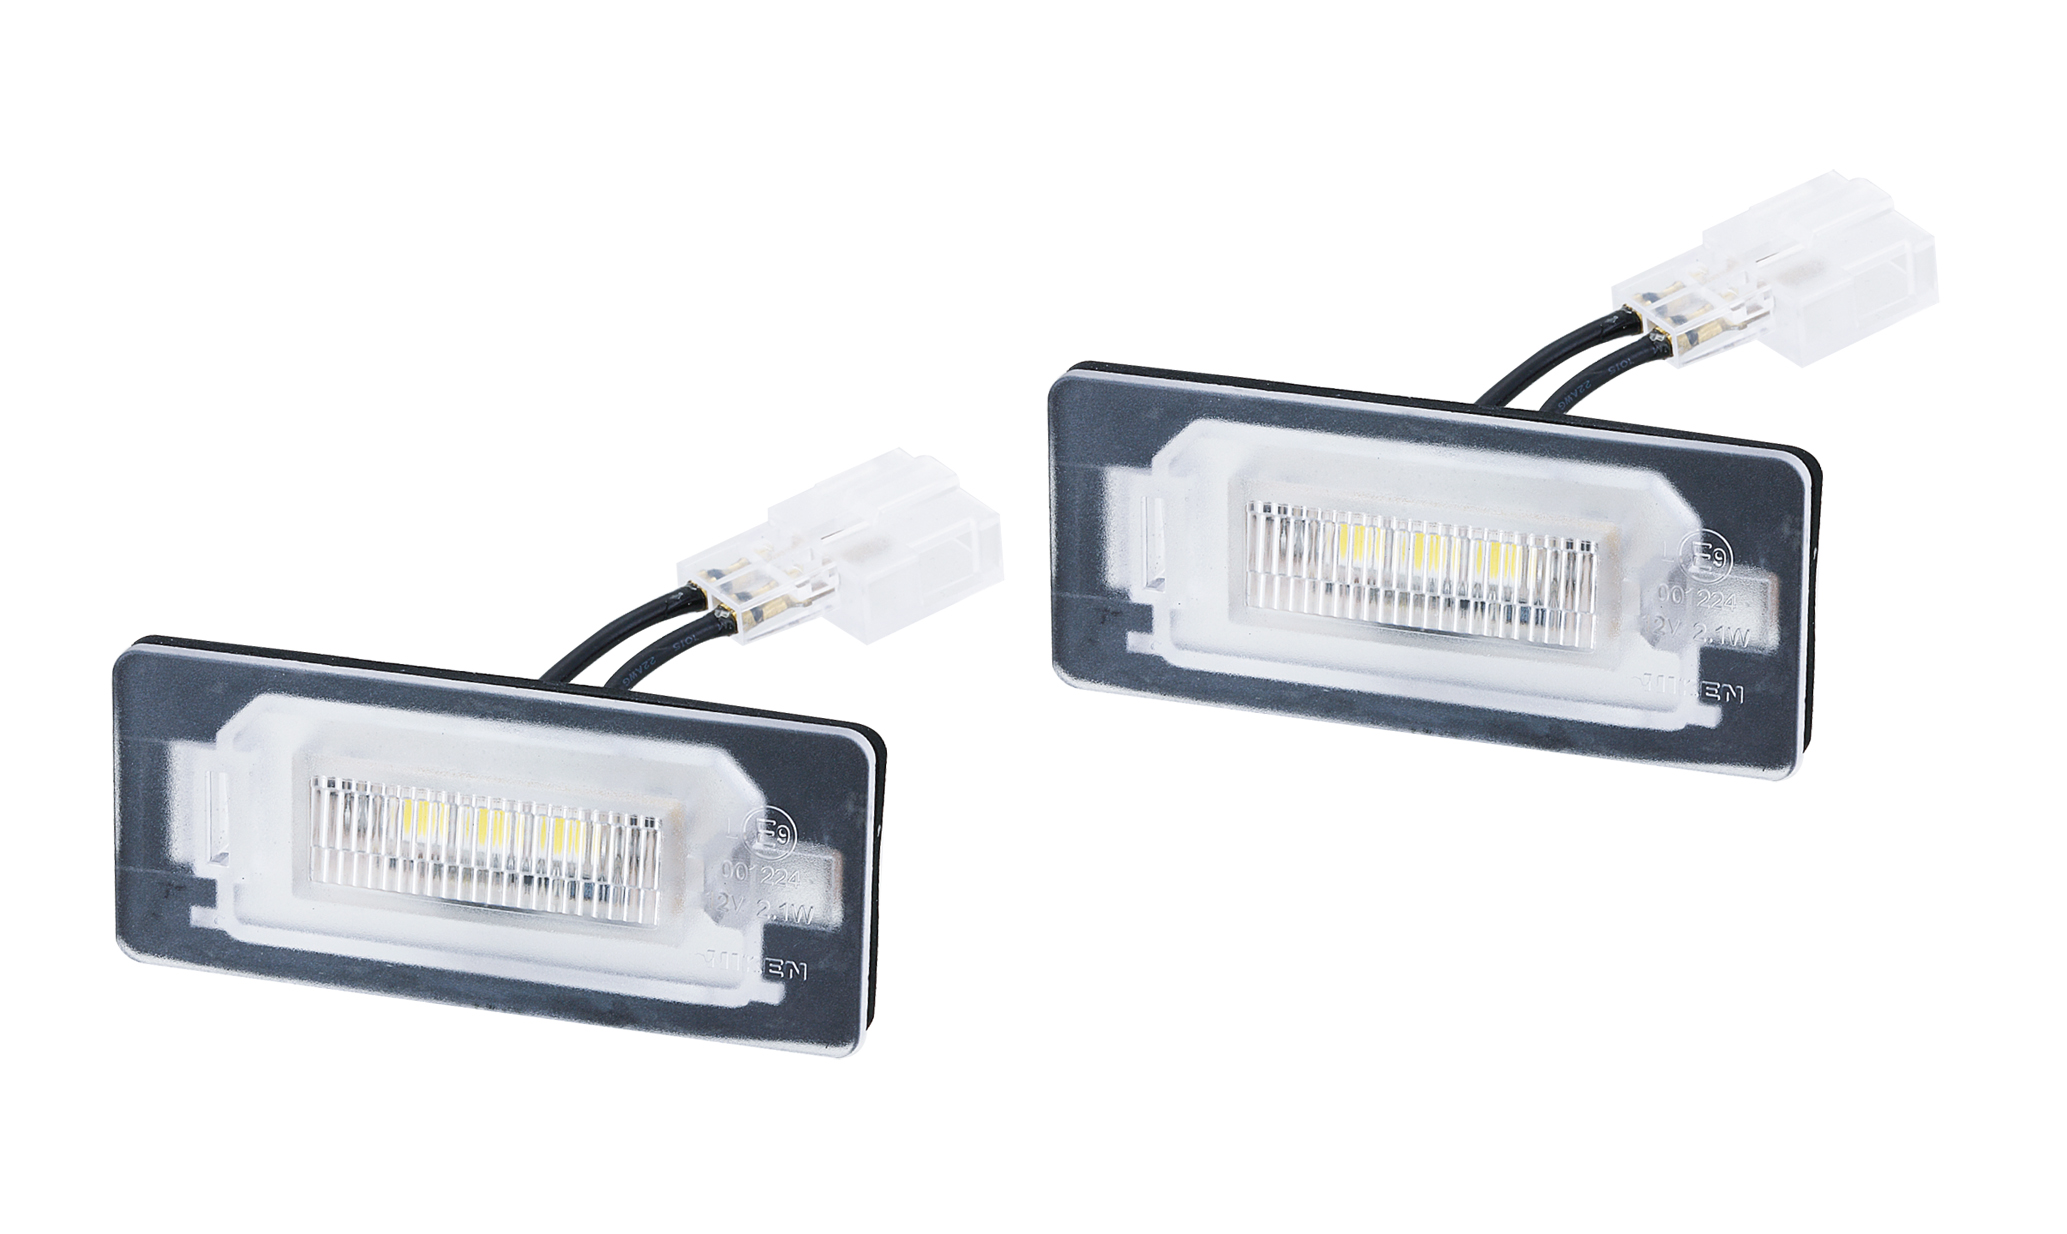 Agricultural / Tractor LED License Lamp for Lighting Series made by NIKEN Vehicle Lighting Co., LTD. 首通股份有限公司 - MatchSupplier.com